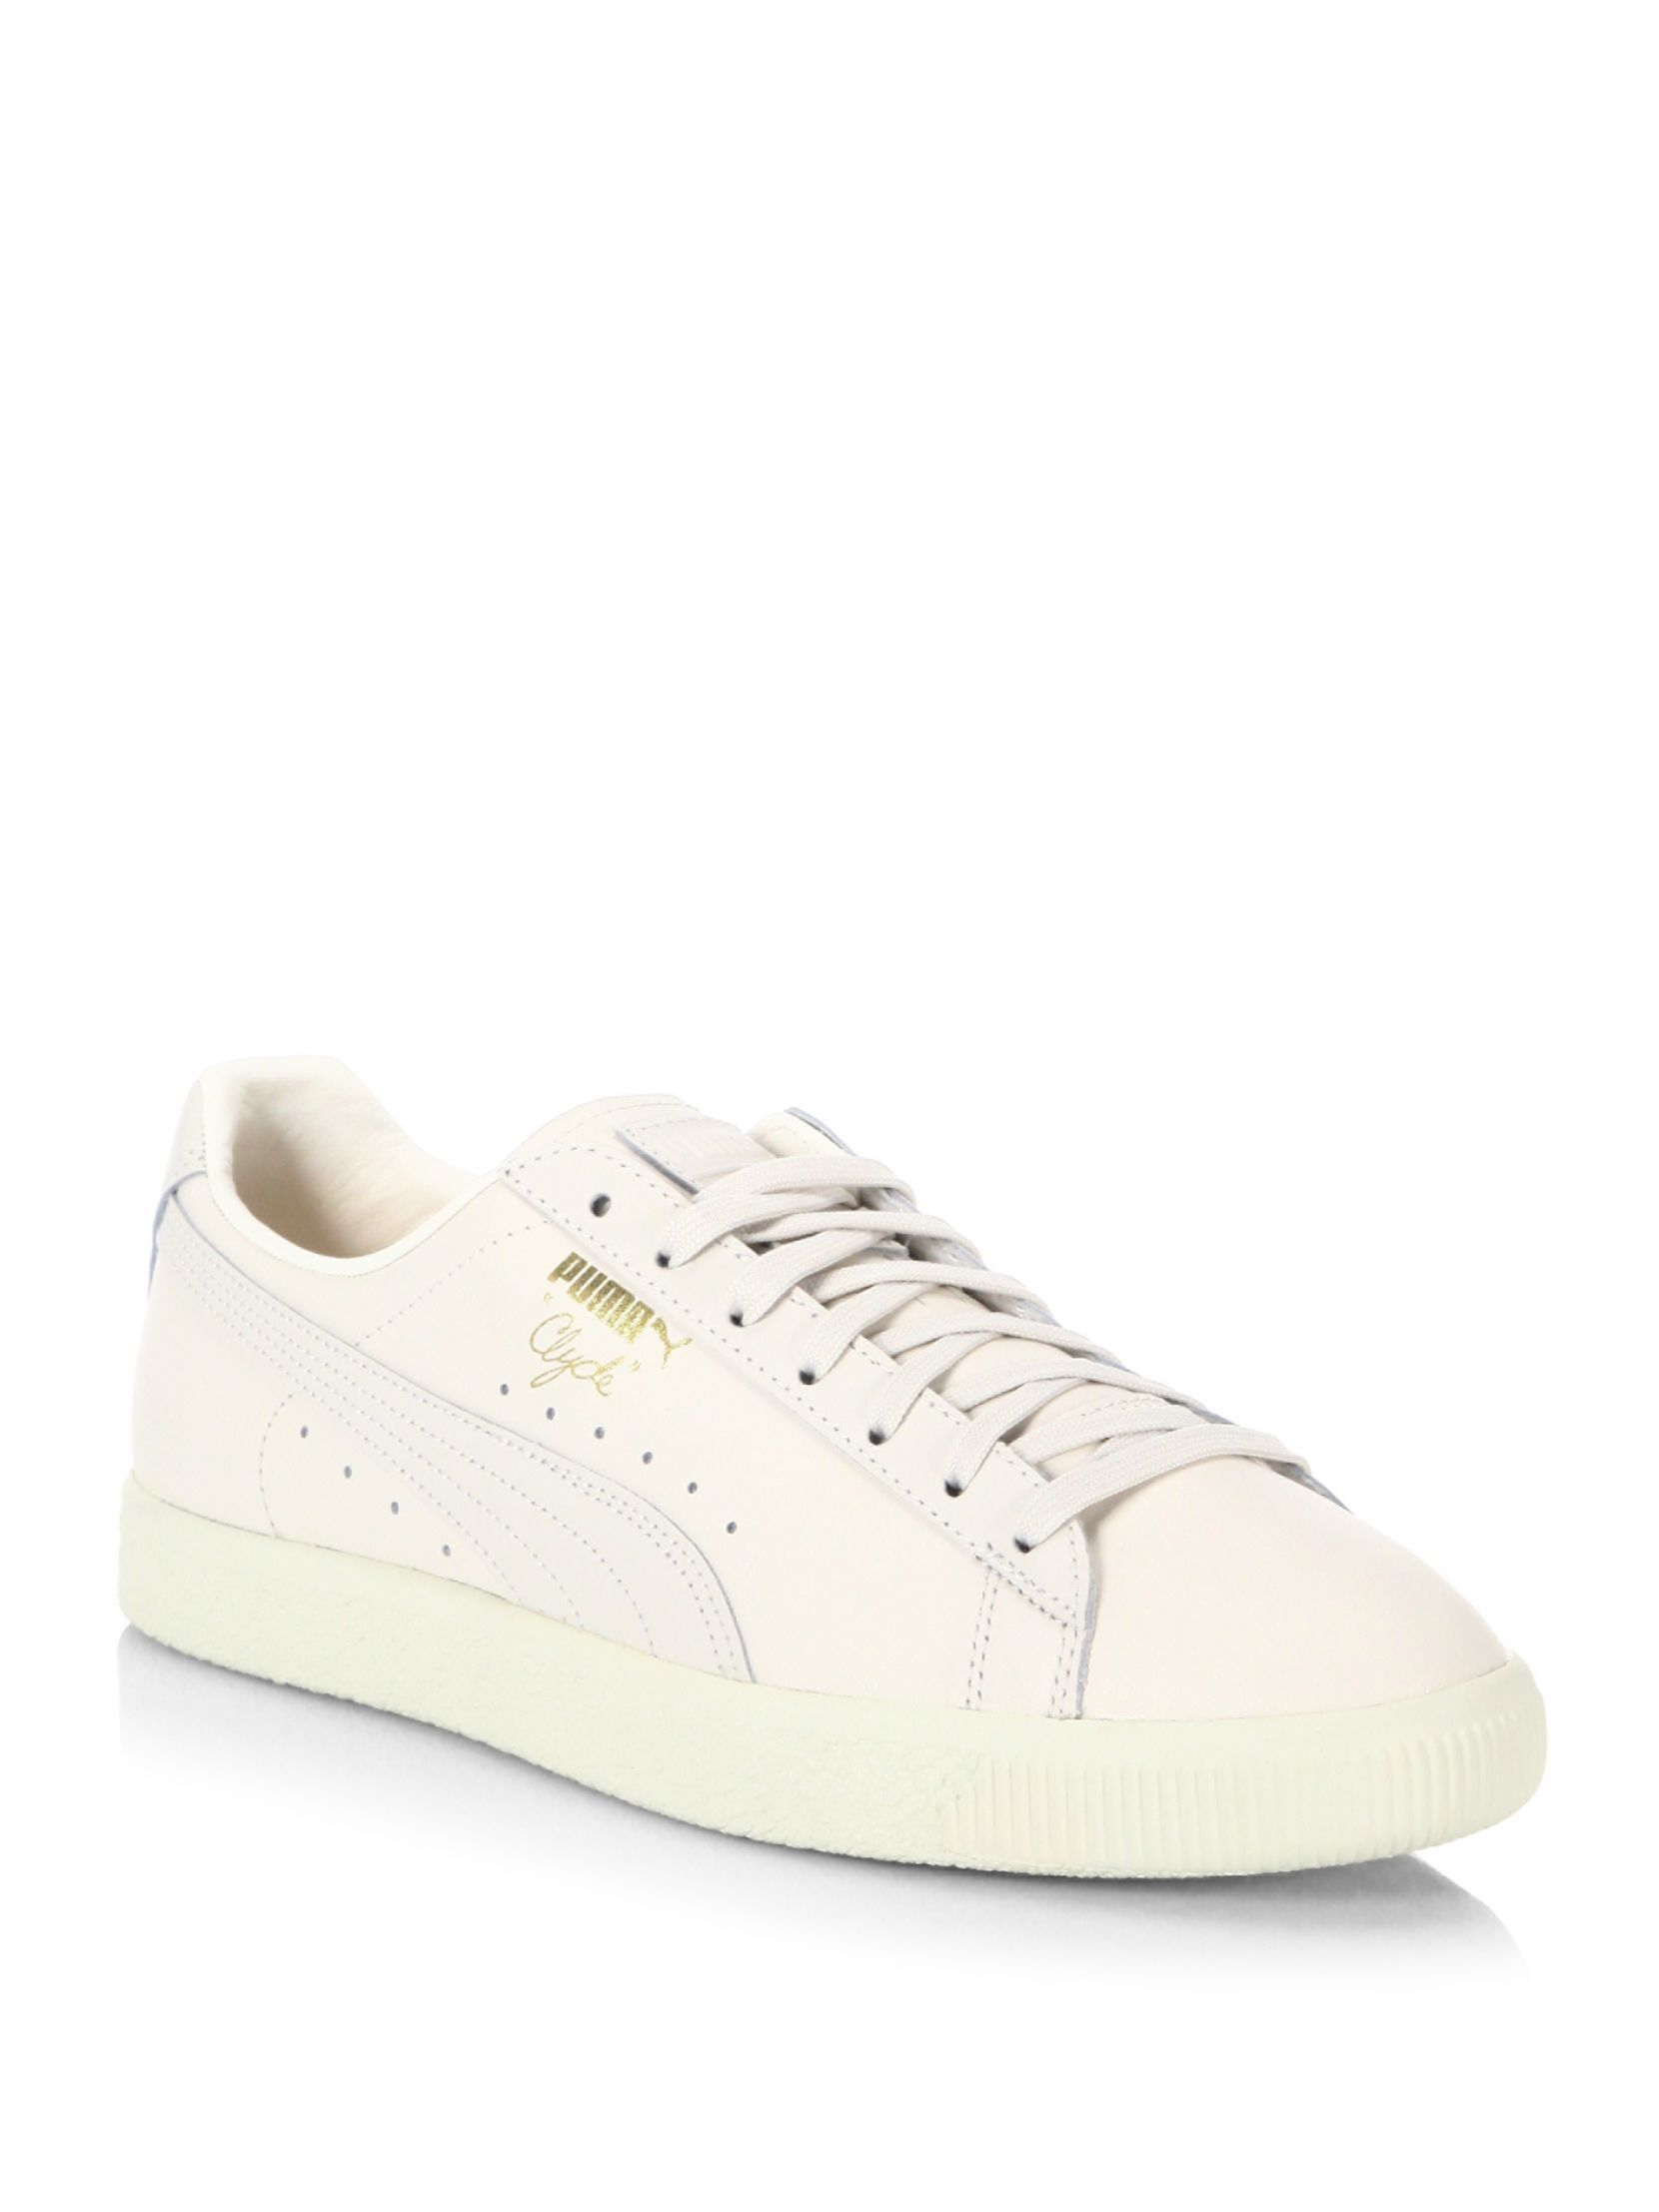 dc6cfedc97f PUMA Clyde Natural Leather Sneakers White Sneakers